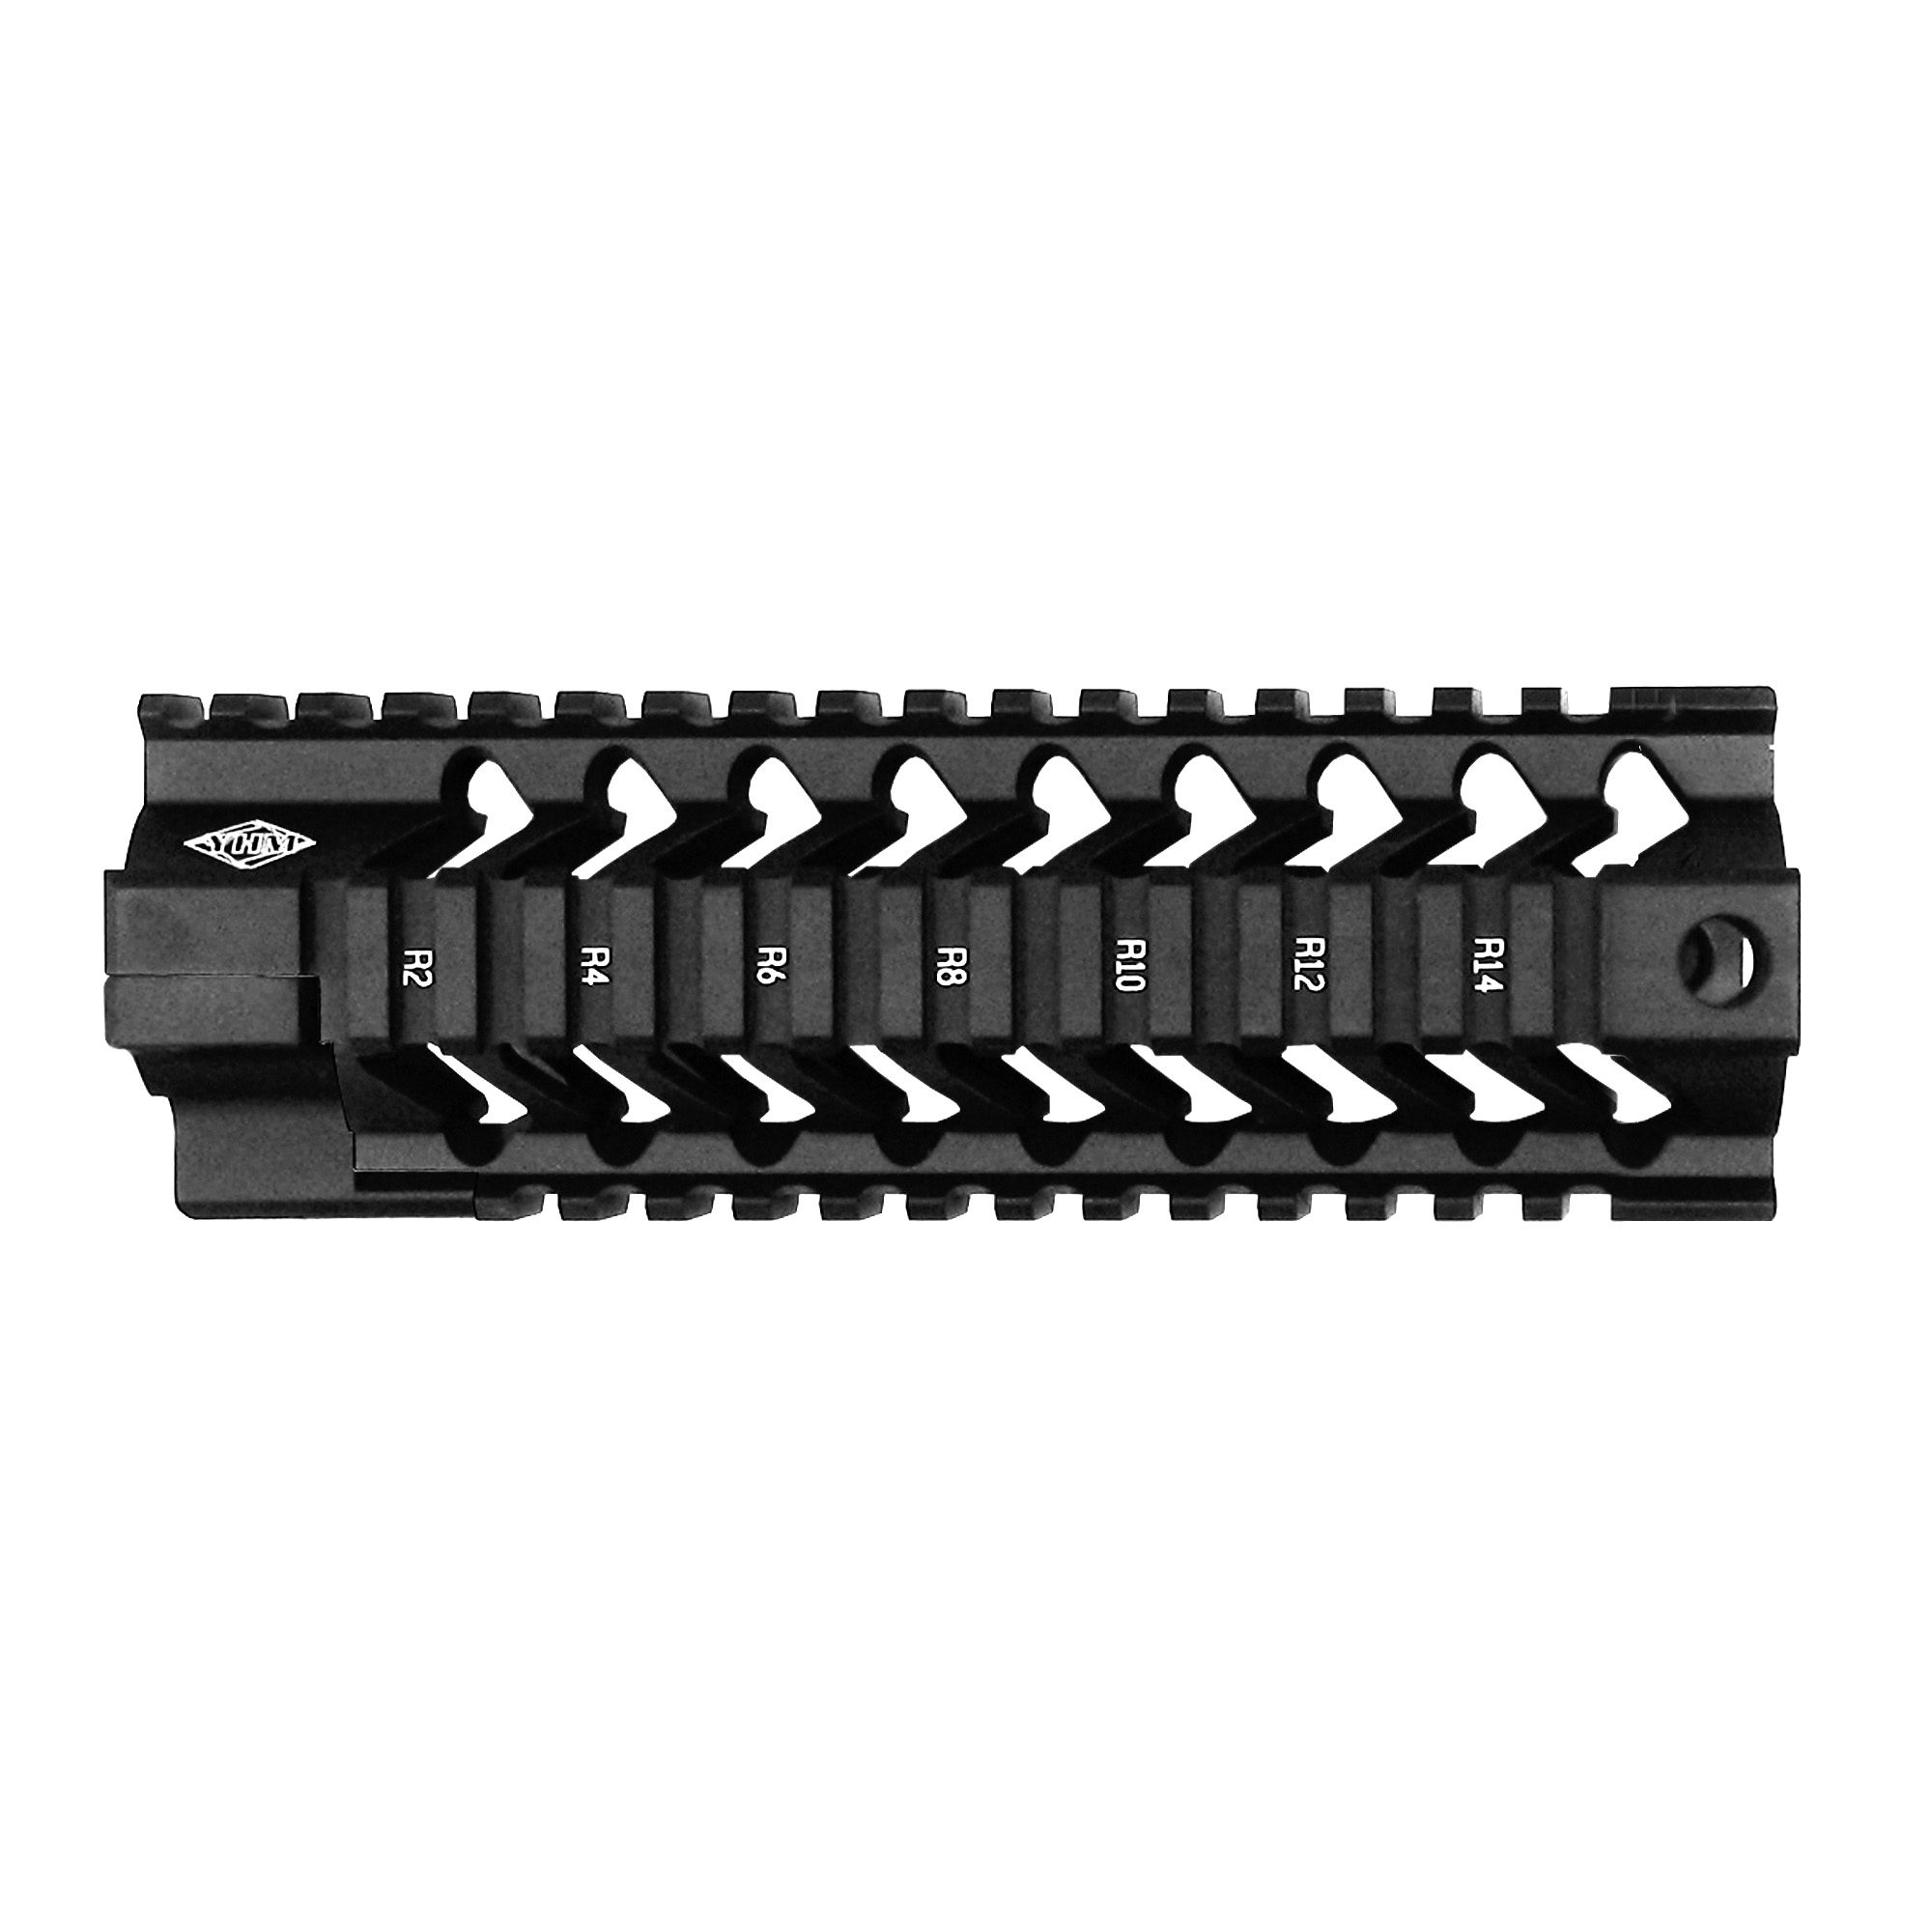 """The S.L.R. (Slim"""" Light"""" Rail) series of handguards were designed to address the two main customer requests regarding their other handguard models. The number one request was to make a thinner handguard. Both versions are slimmer than their current handguards"""" the smooth being more than 5/8"""" thinner than their current quad rail design! The second most common request was to design a handguard that would accept most aftermarket piston systems. The new profile of the S.L.R. allows for most piston systems to be used while maintaining a top rail that co-witnesses with the upper receiver. They also redesigned the top rail so that when installed it creates one continuous picatinny rail between the upper receiver and the handguard. Also redesigned is their method for attaching the handguard to the receiver. NO EXTRA TOOLS are needed to install the S.L.R. handguards! The smooth (customizable) version allows you to mount accessory rails to the sides and bottom if you desire using the same Customizable Forearm Rails that they currently offer."""